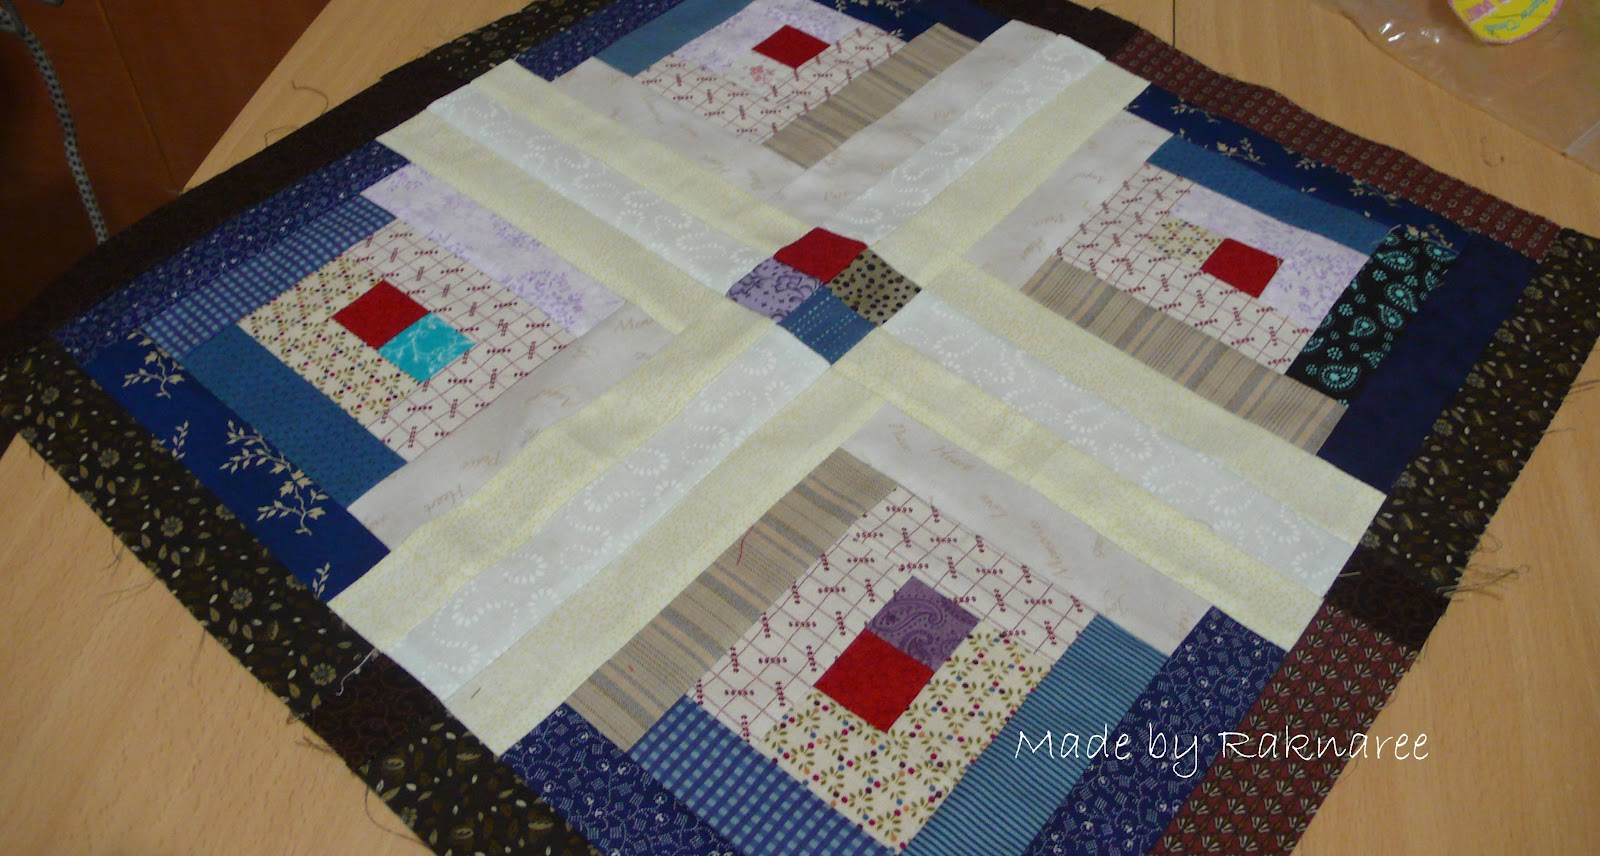 Marvelous photograph of Log Cabin Come2Quilt with #6F201C color and 1600x856 pixels